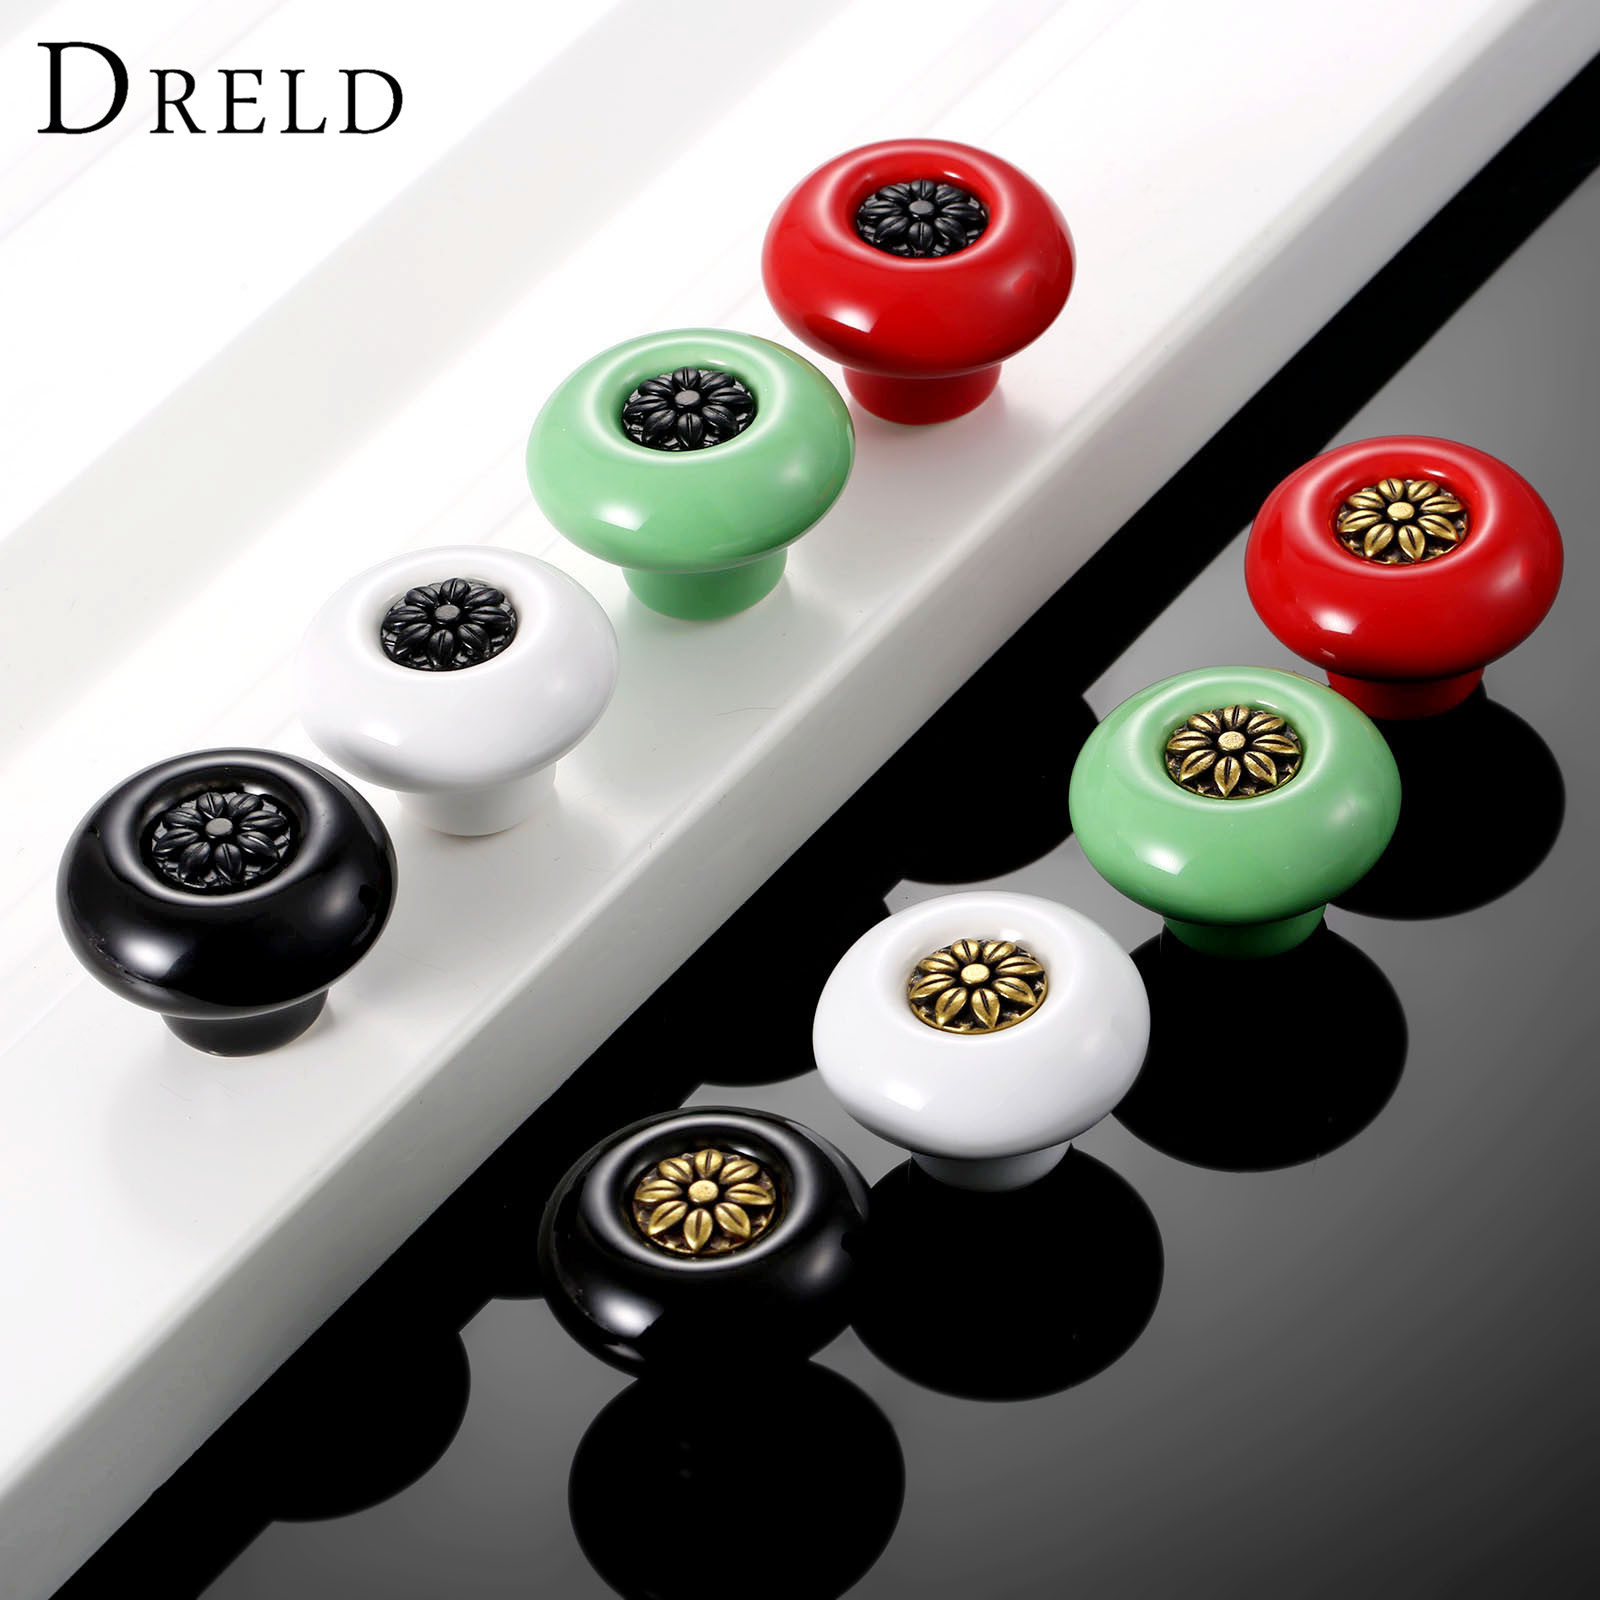 DRELD Vintage Furniture Handle Ceramic Door Knob Cupboard Drawer Cabinet Knobs and Handle kitchen Pull Handle Furniture Hardware vintage bird ceramic door knob children room cupboard cabinet drawer suitable kitchen furniture home pull handle with screws